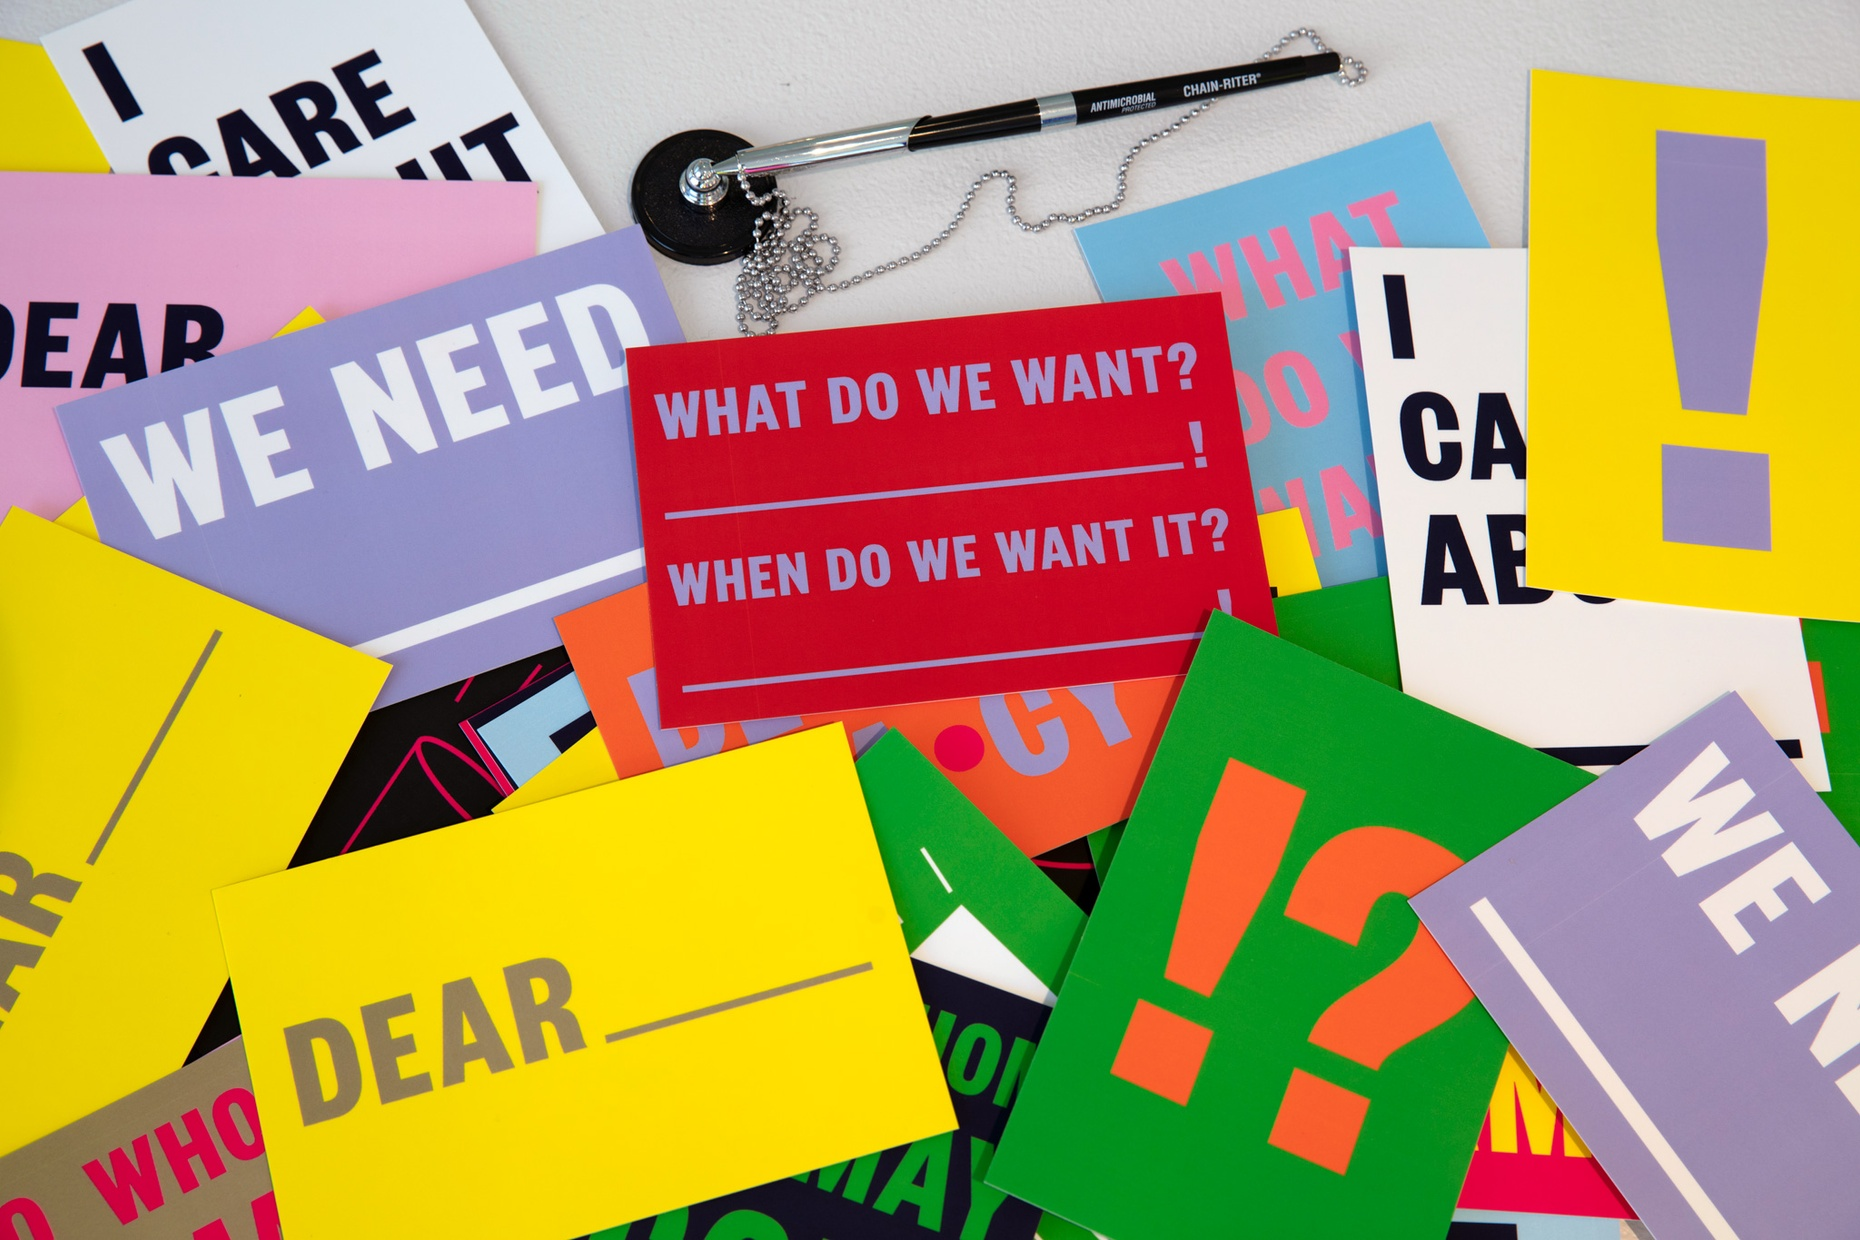 """Various colorful postcards with text like """"Dear___"""", """"We Need ____"""", and """"What do we want? _____! When do we want it? ______!"""" spread out on a table."""